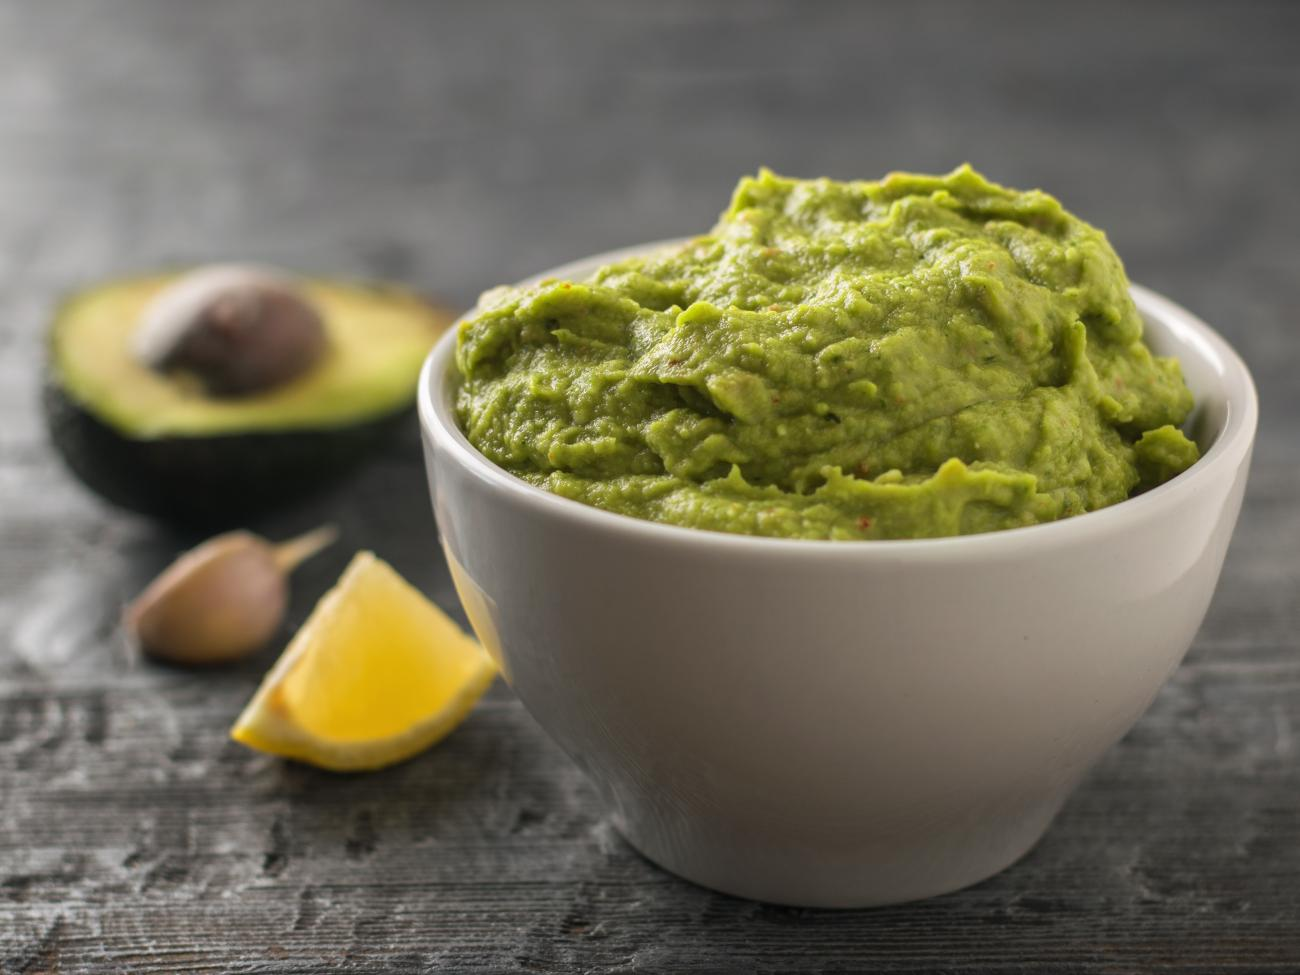 Recipe for Guacamole